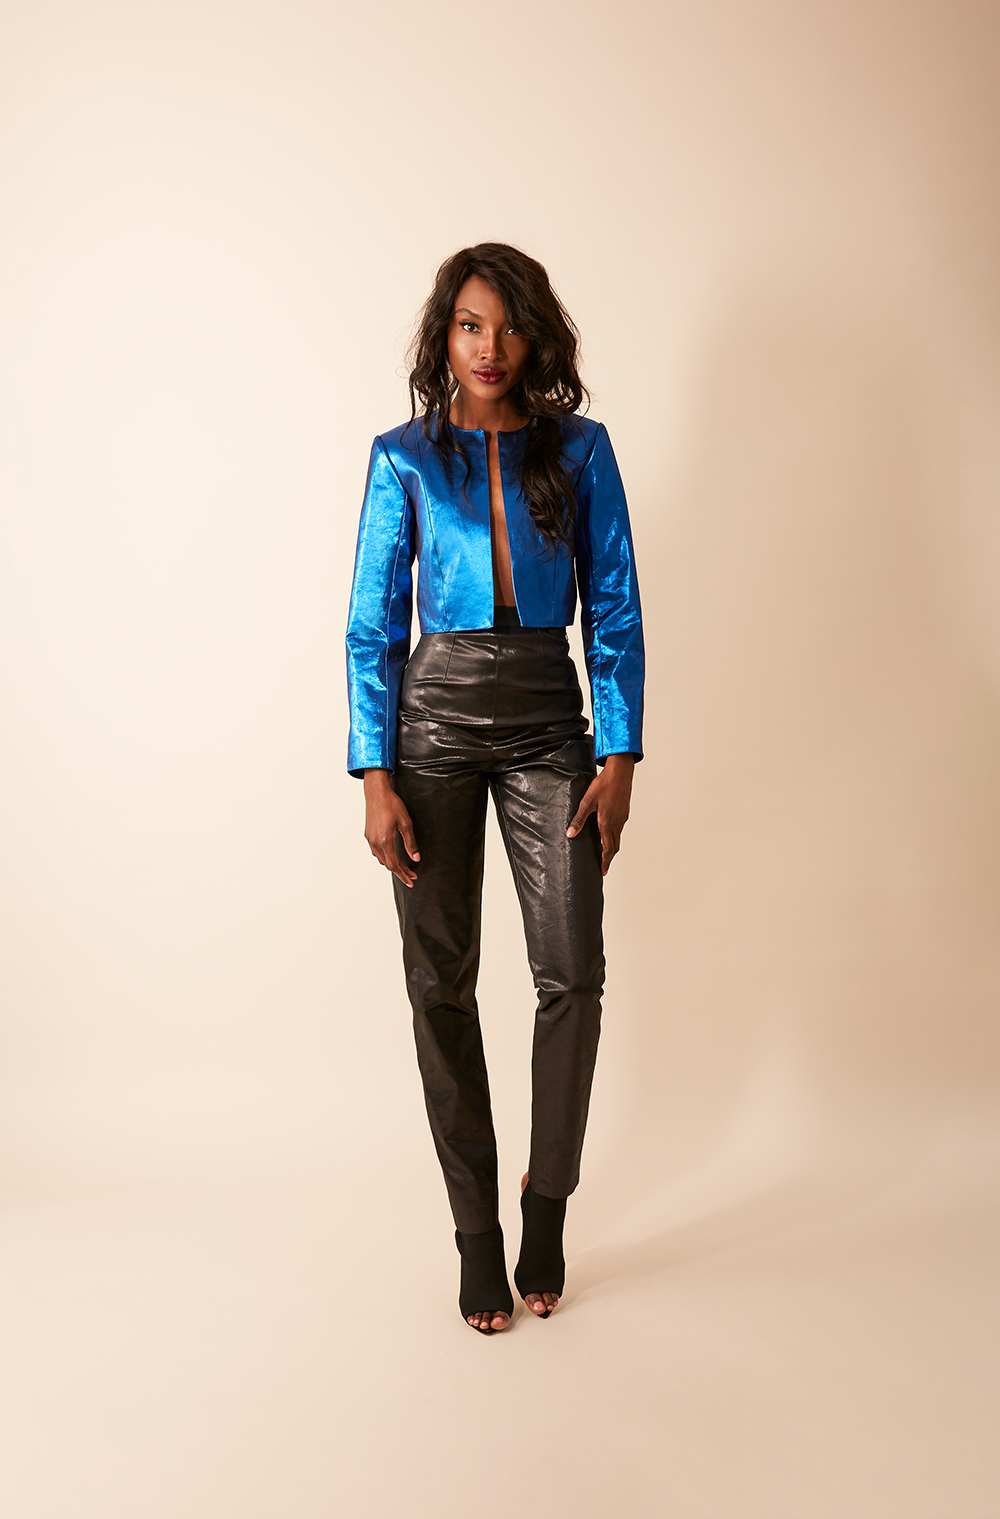 METALLIC BLUE CROPPED JACKET